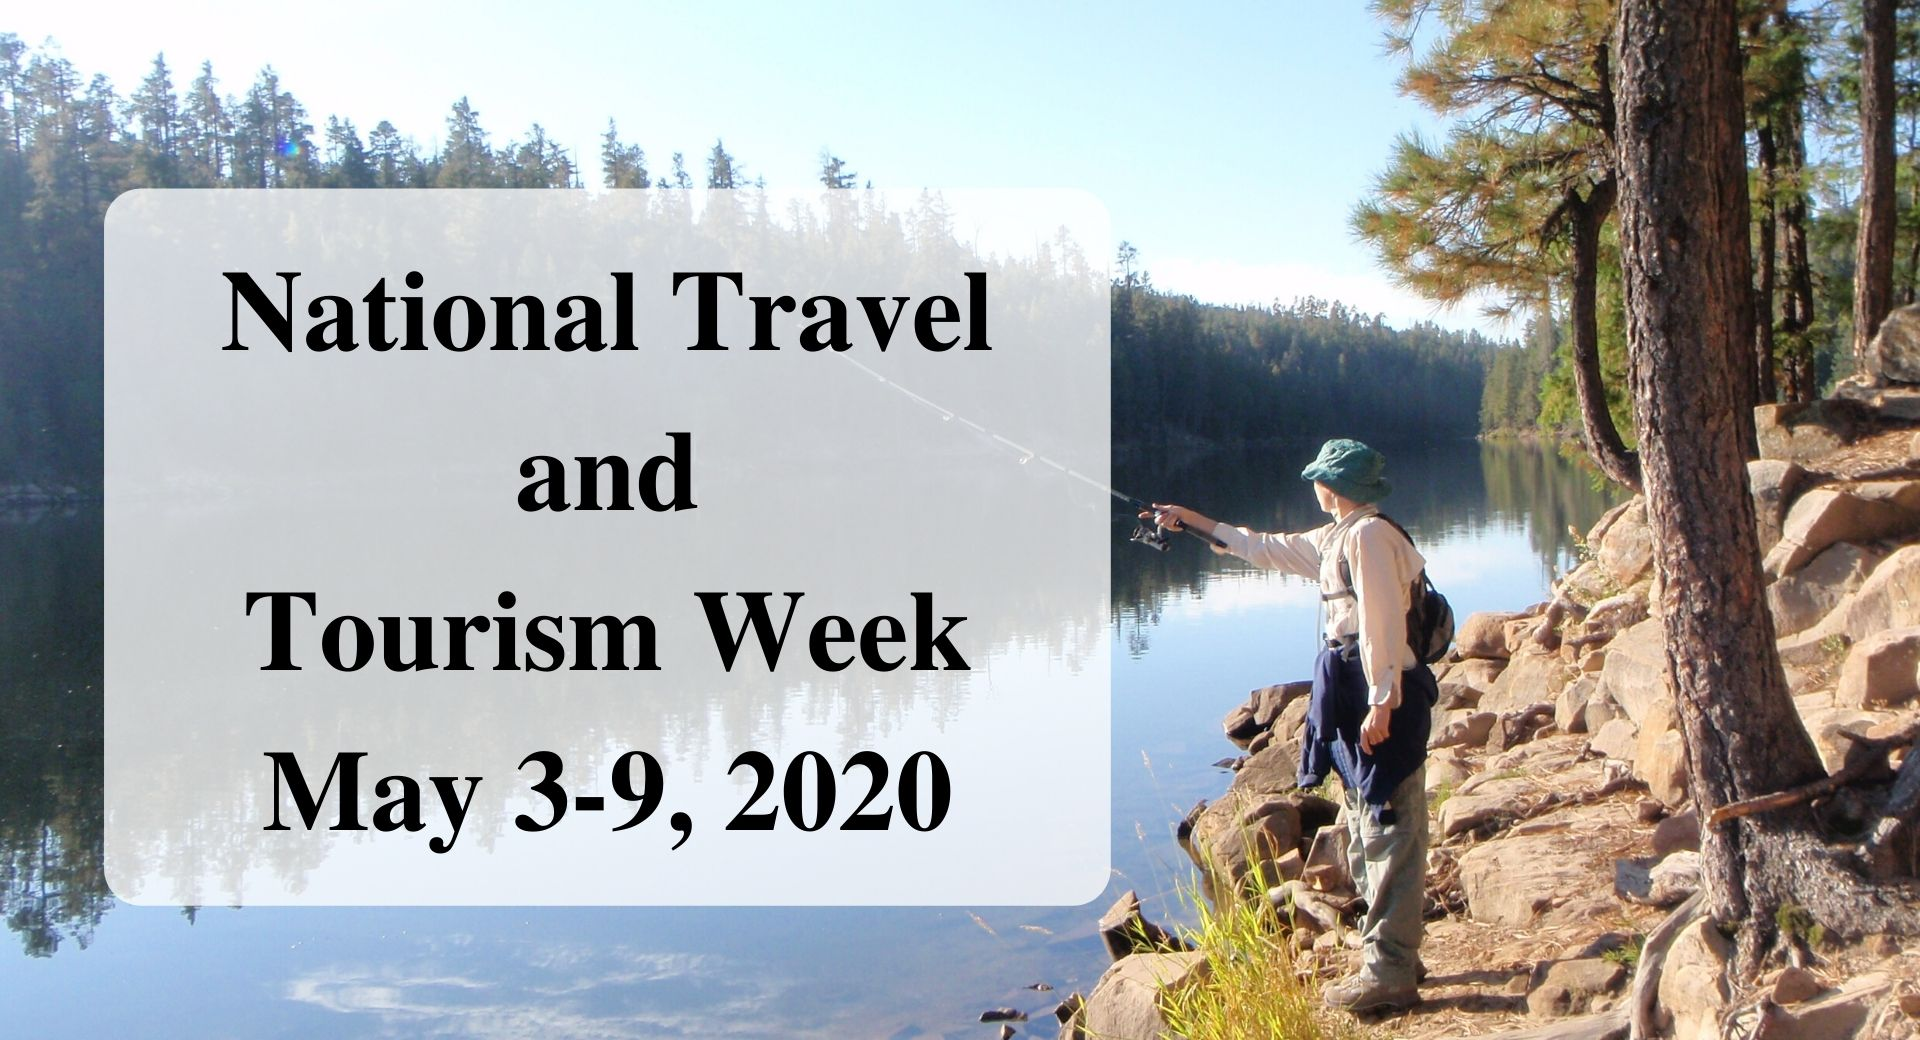 National Travel and Tourism Week May 3-9, 2020 Forever sabbatical